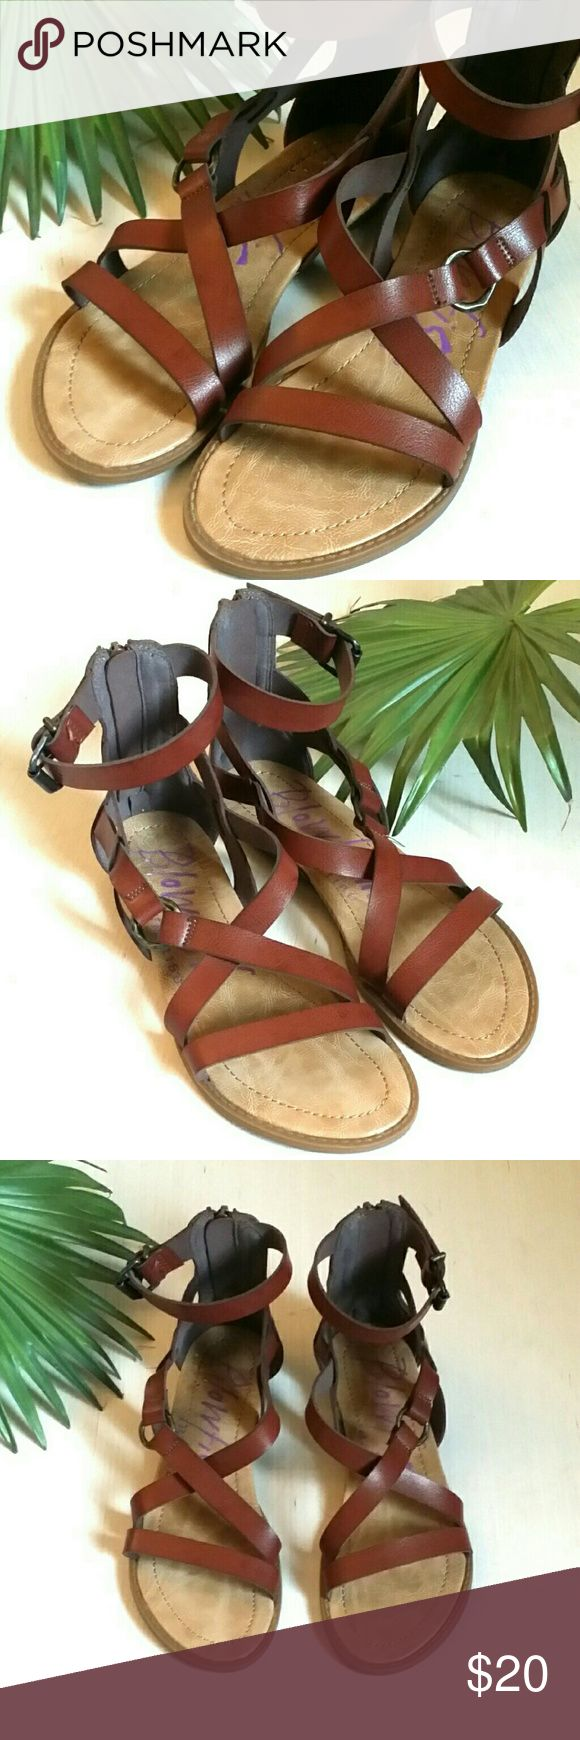 "Blowfish Gladiator Sandals EUC Blowfish Gladiator Sandals EUC Brown leather-like straps with bronze colored buckle and decorative hoop.  Zippered back, in perfect working order. Slight wedge heel 1"" Size 6 1/2  Only worn a few times!  Comfortable & on trend! Blowfish Shoes Sandals"